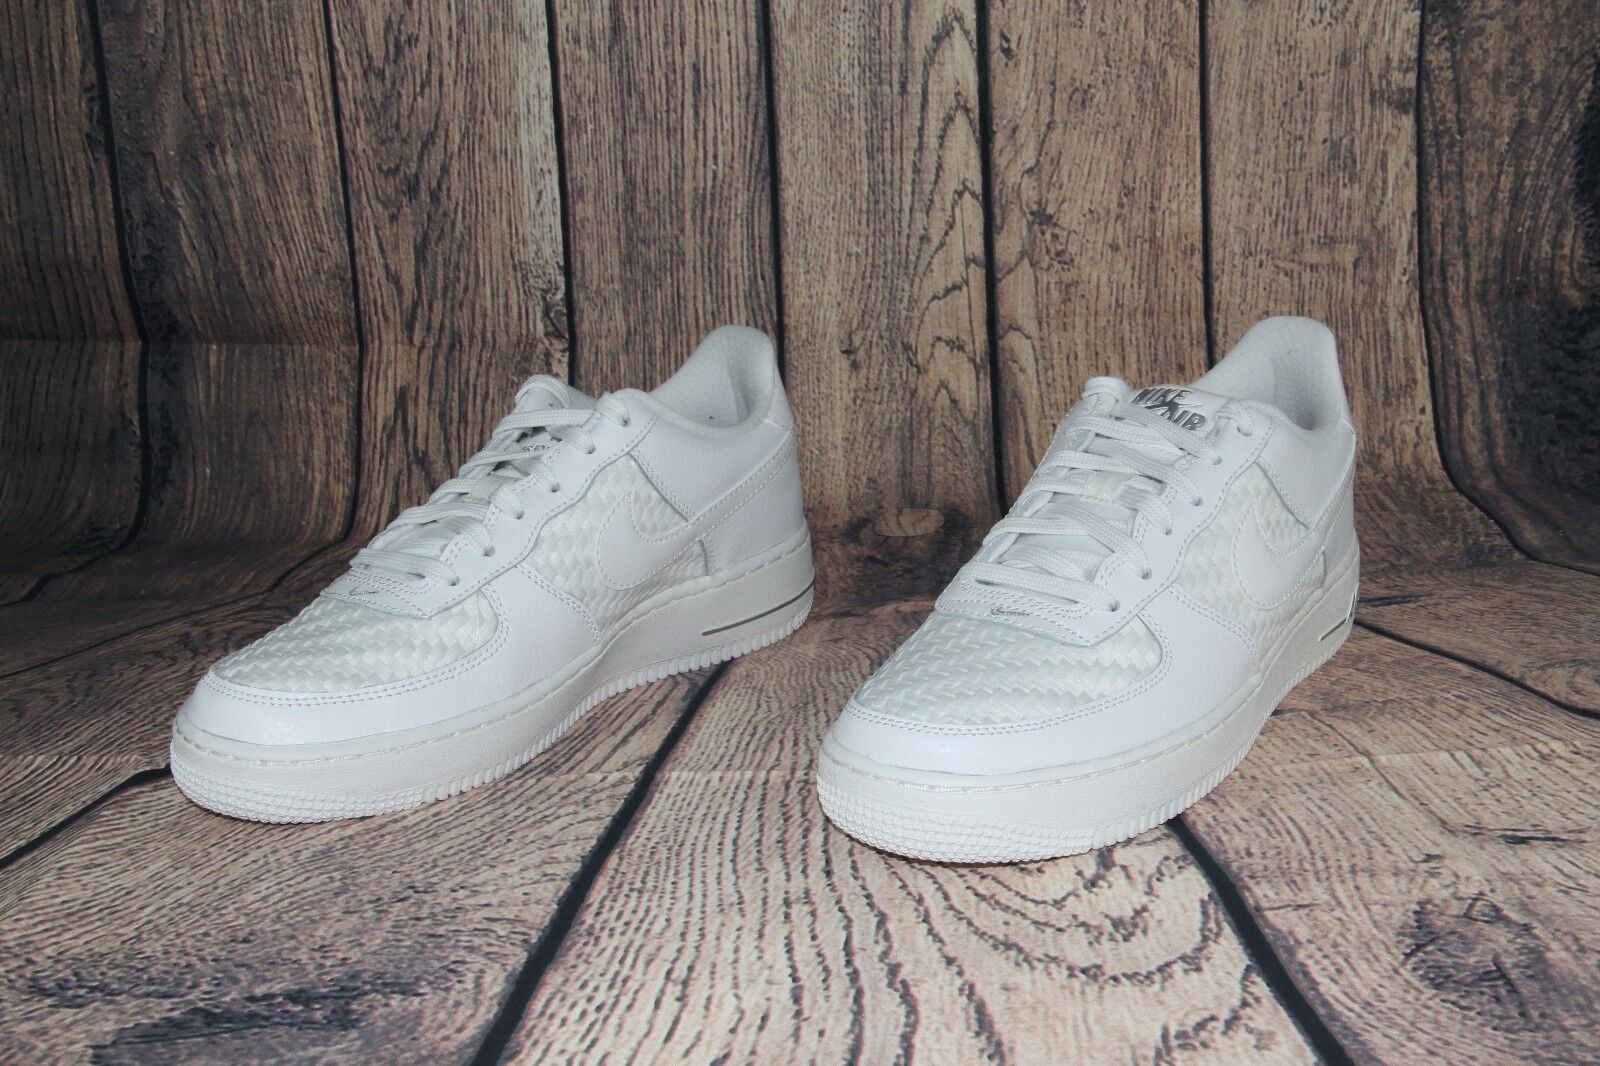 96069c10c Nike Air Force 1 Lv8 Big Kids 820438-105 Summit White Woven Shoes ...